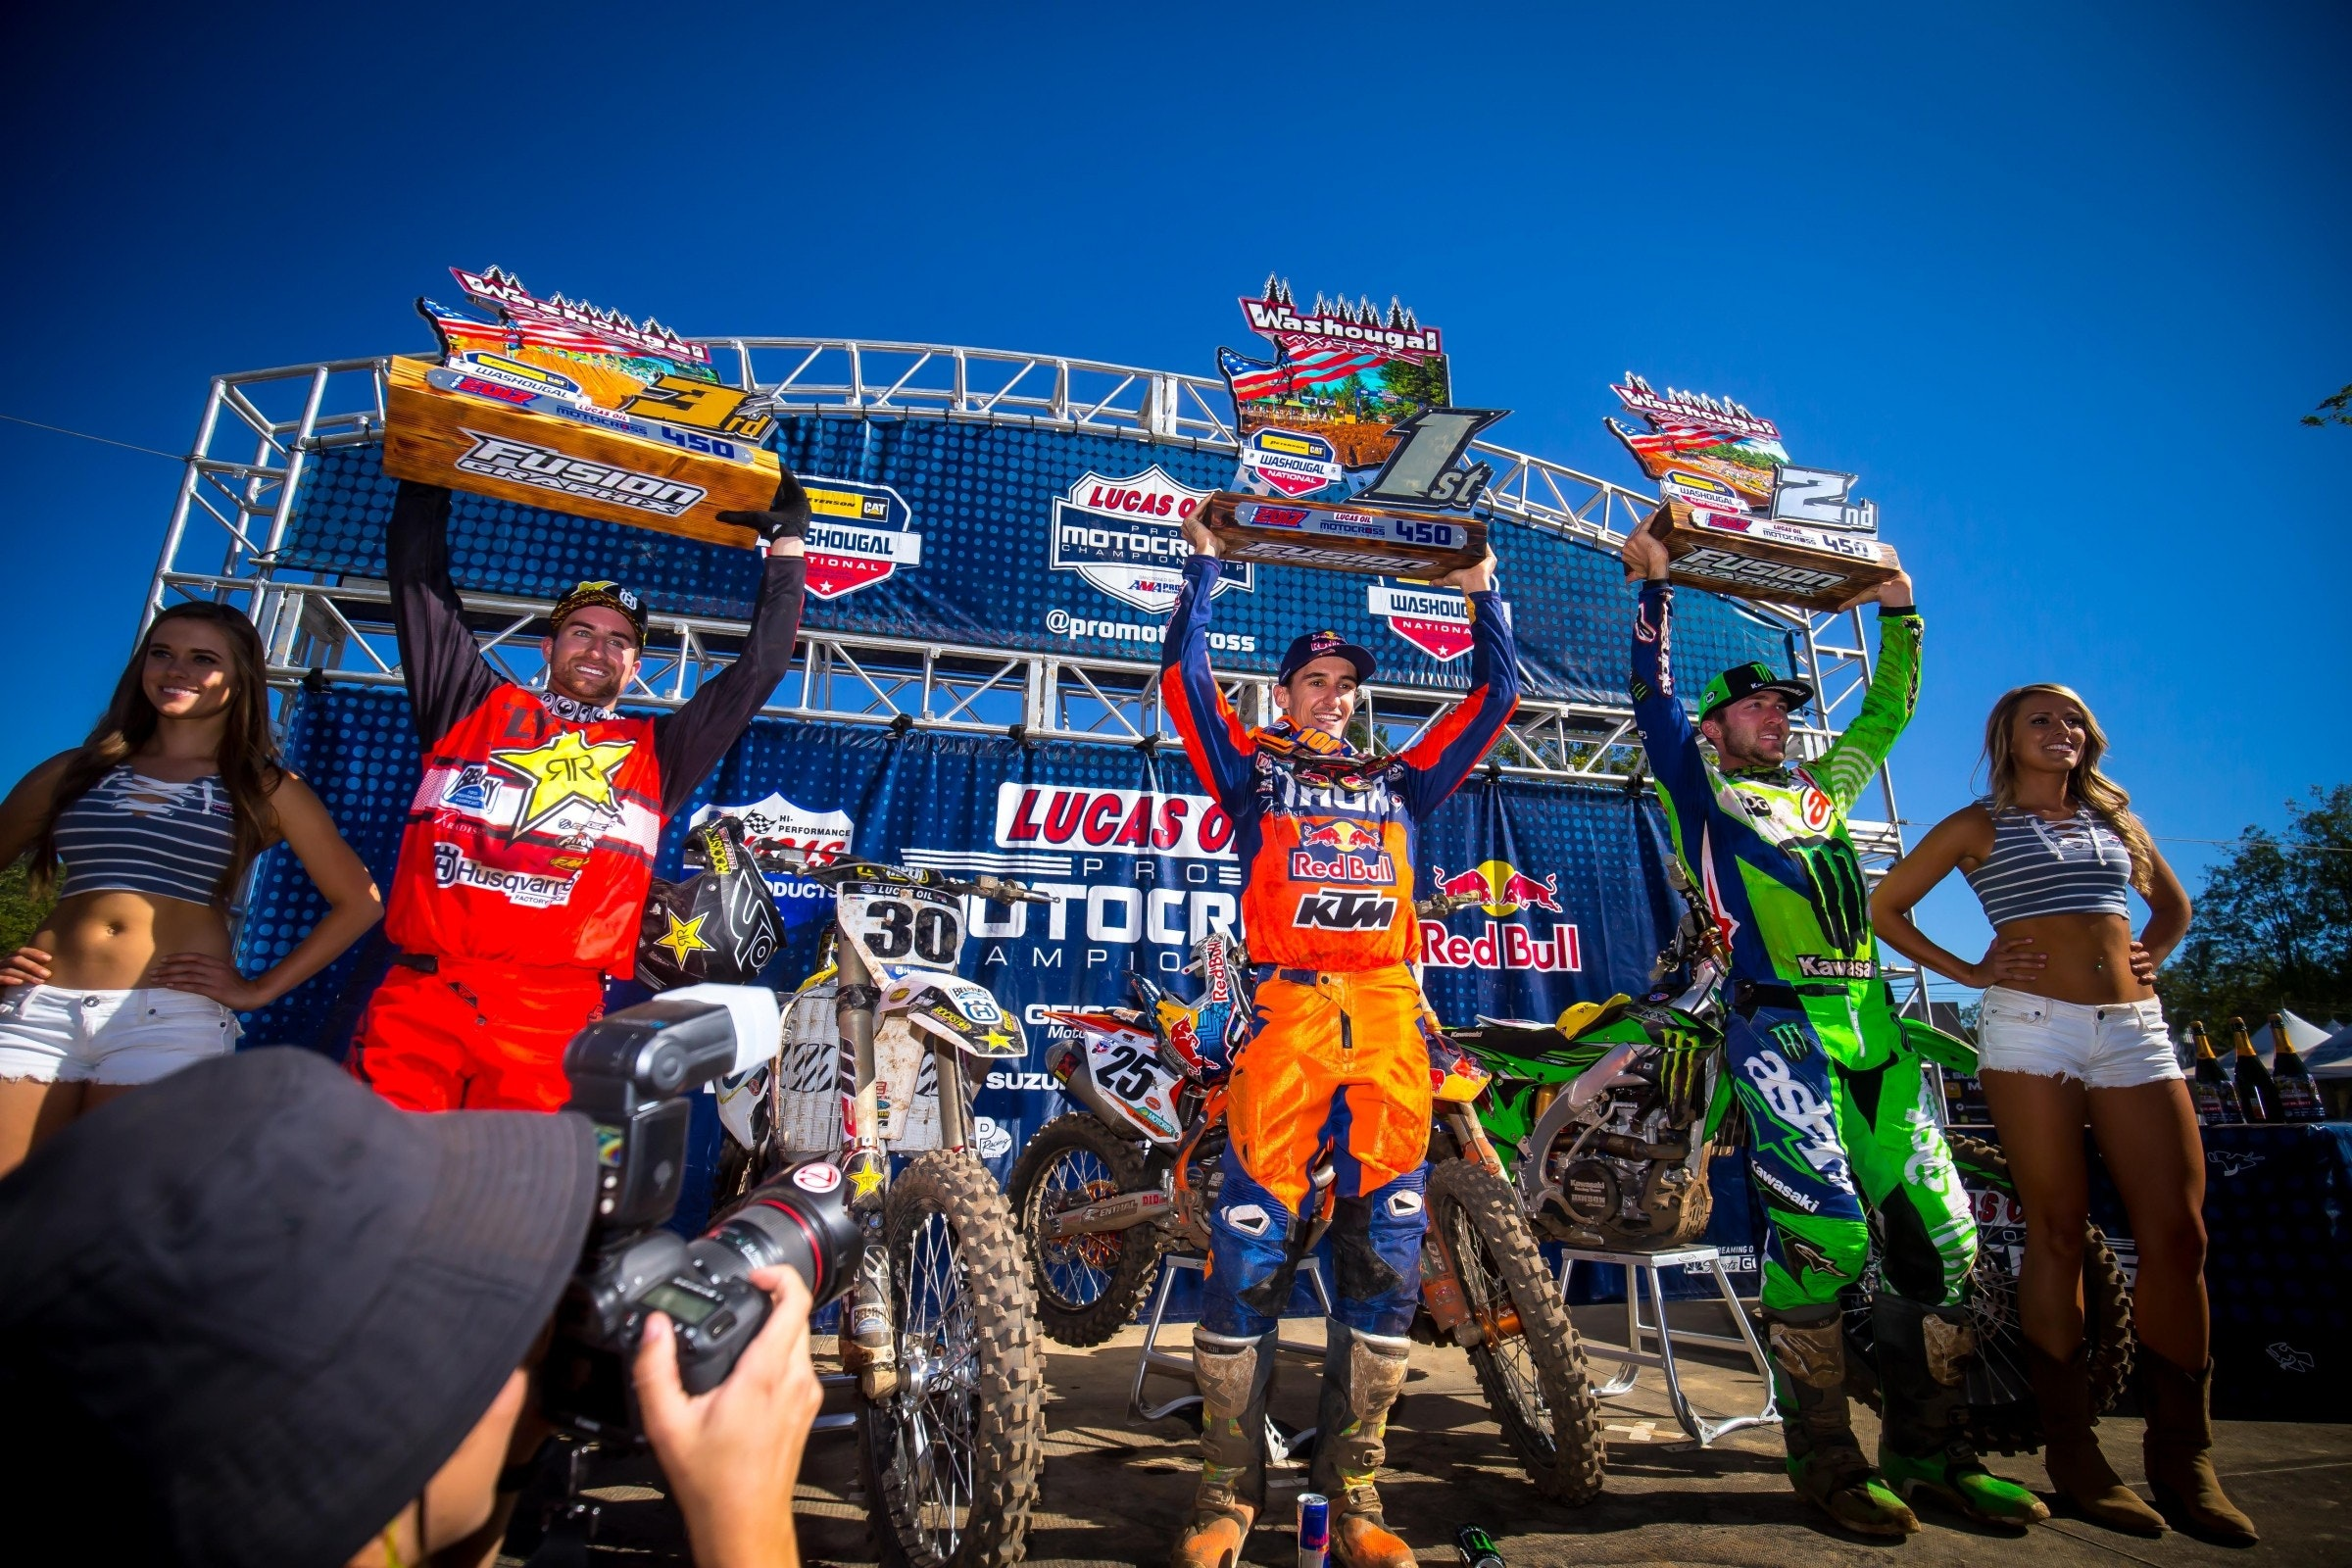 The Dialog: 450 Podium from Washougal – Motocross